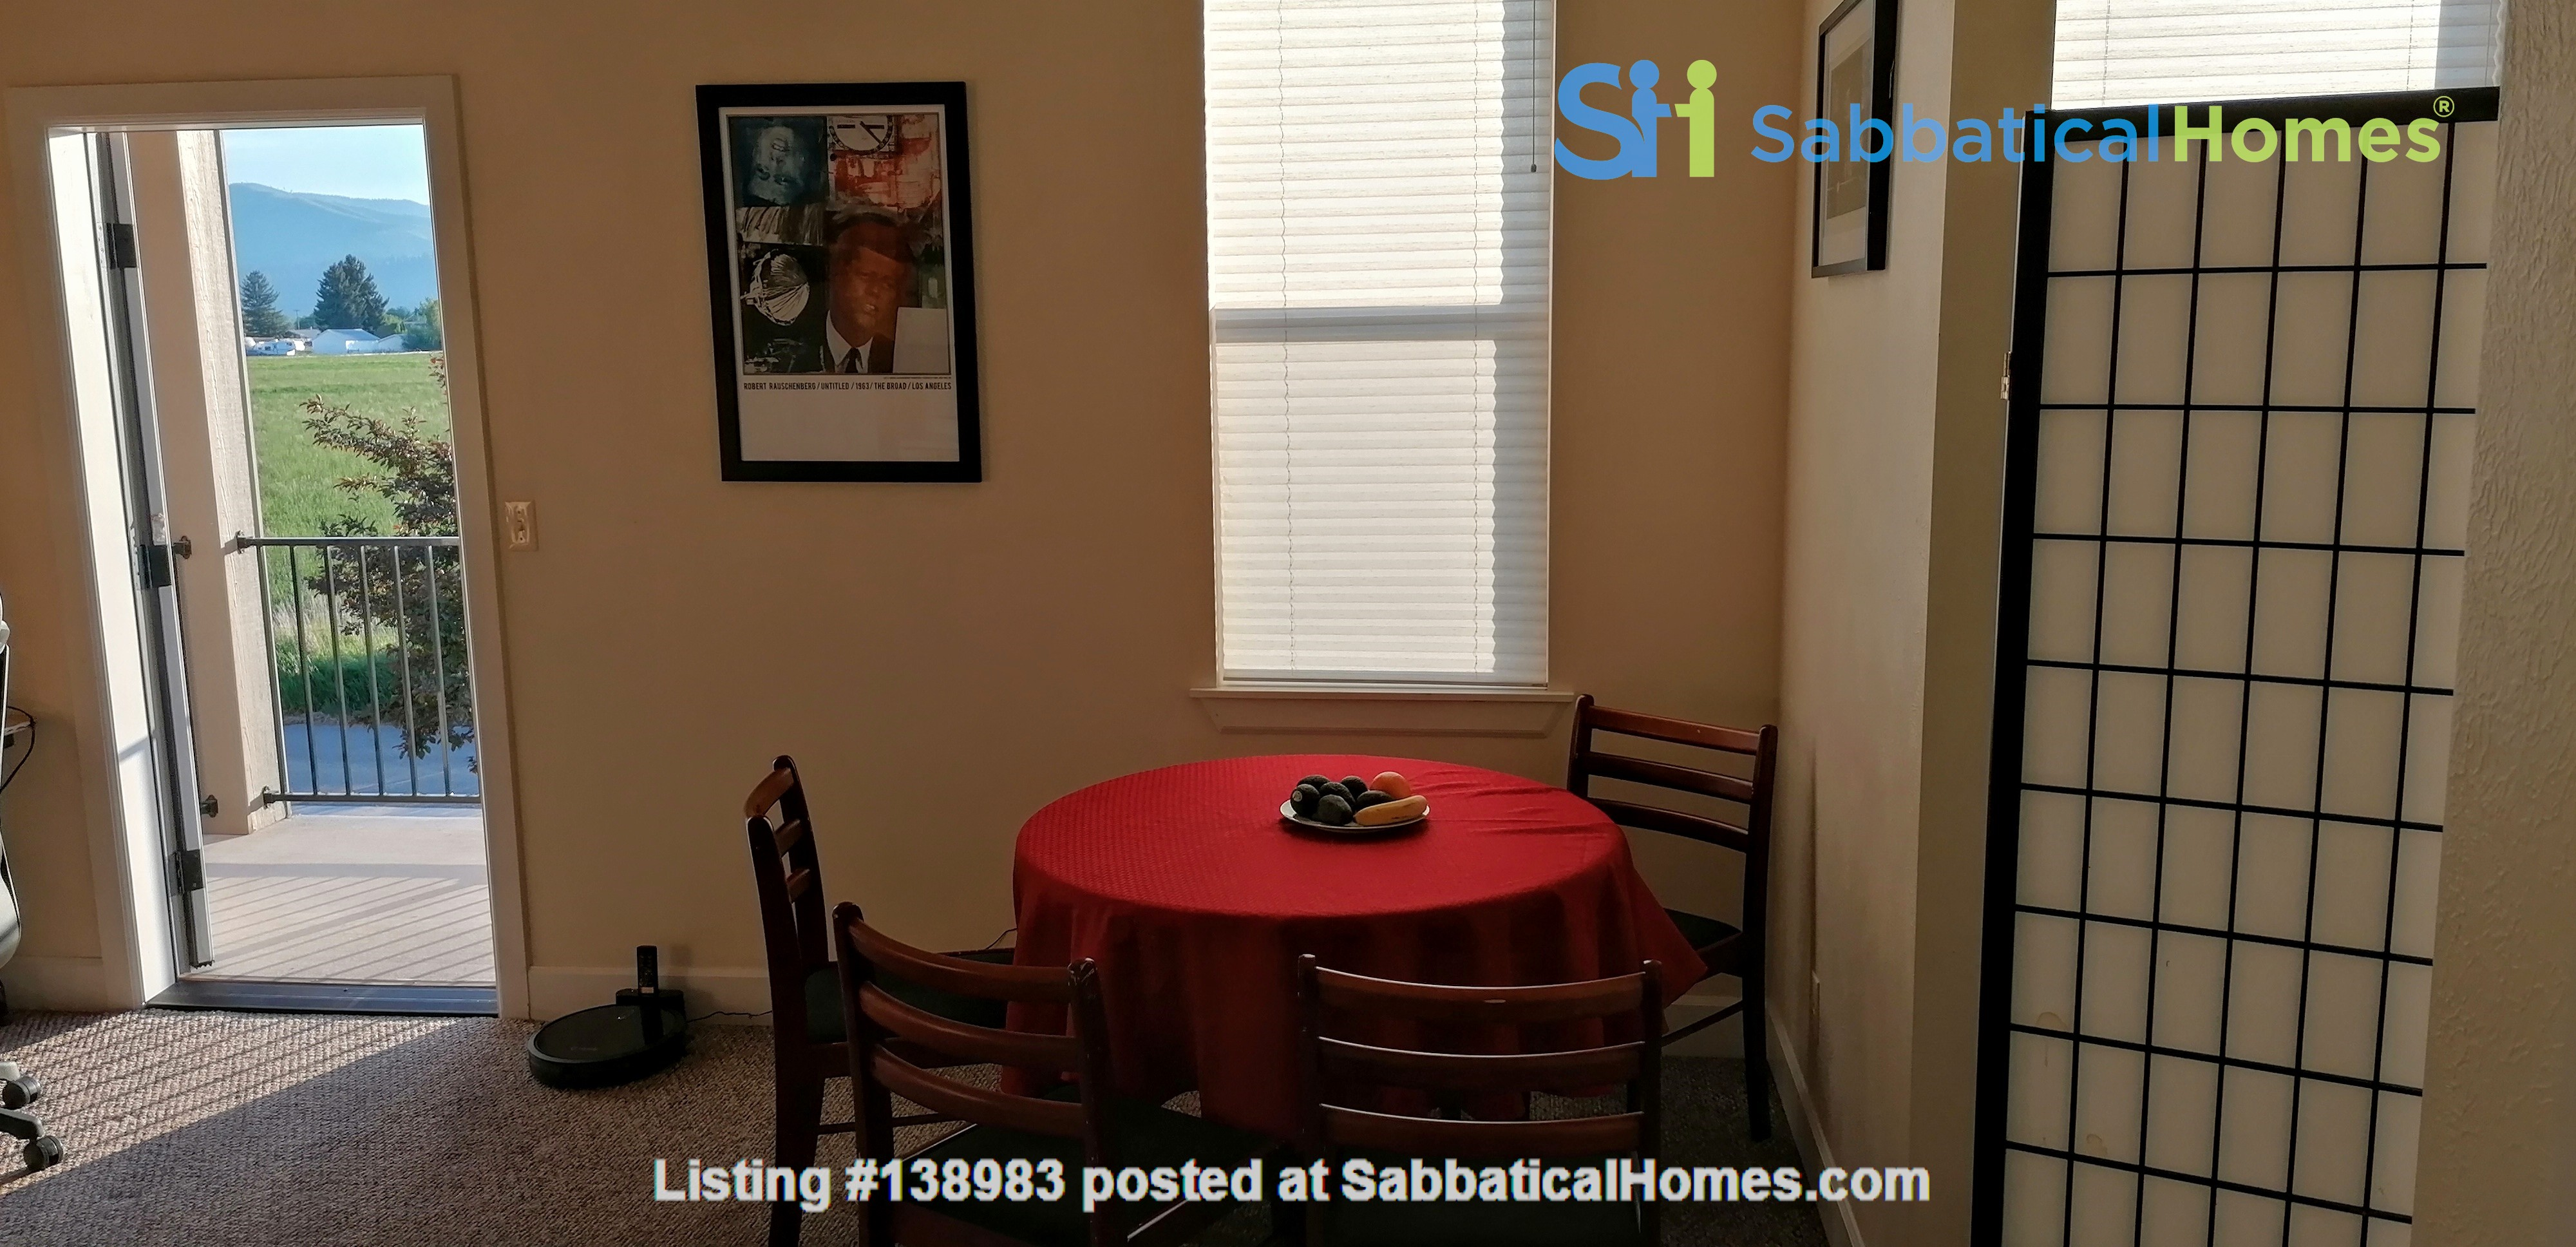 Spacious one bedroom/studio  apartment in Missoula, MT Home Rental in Missoula, Montana, United States 3